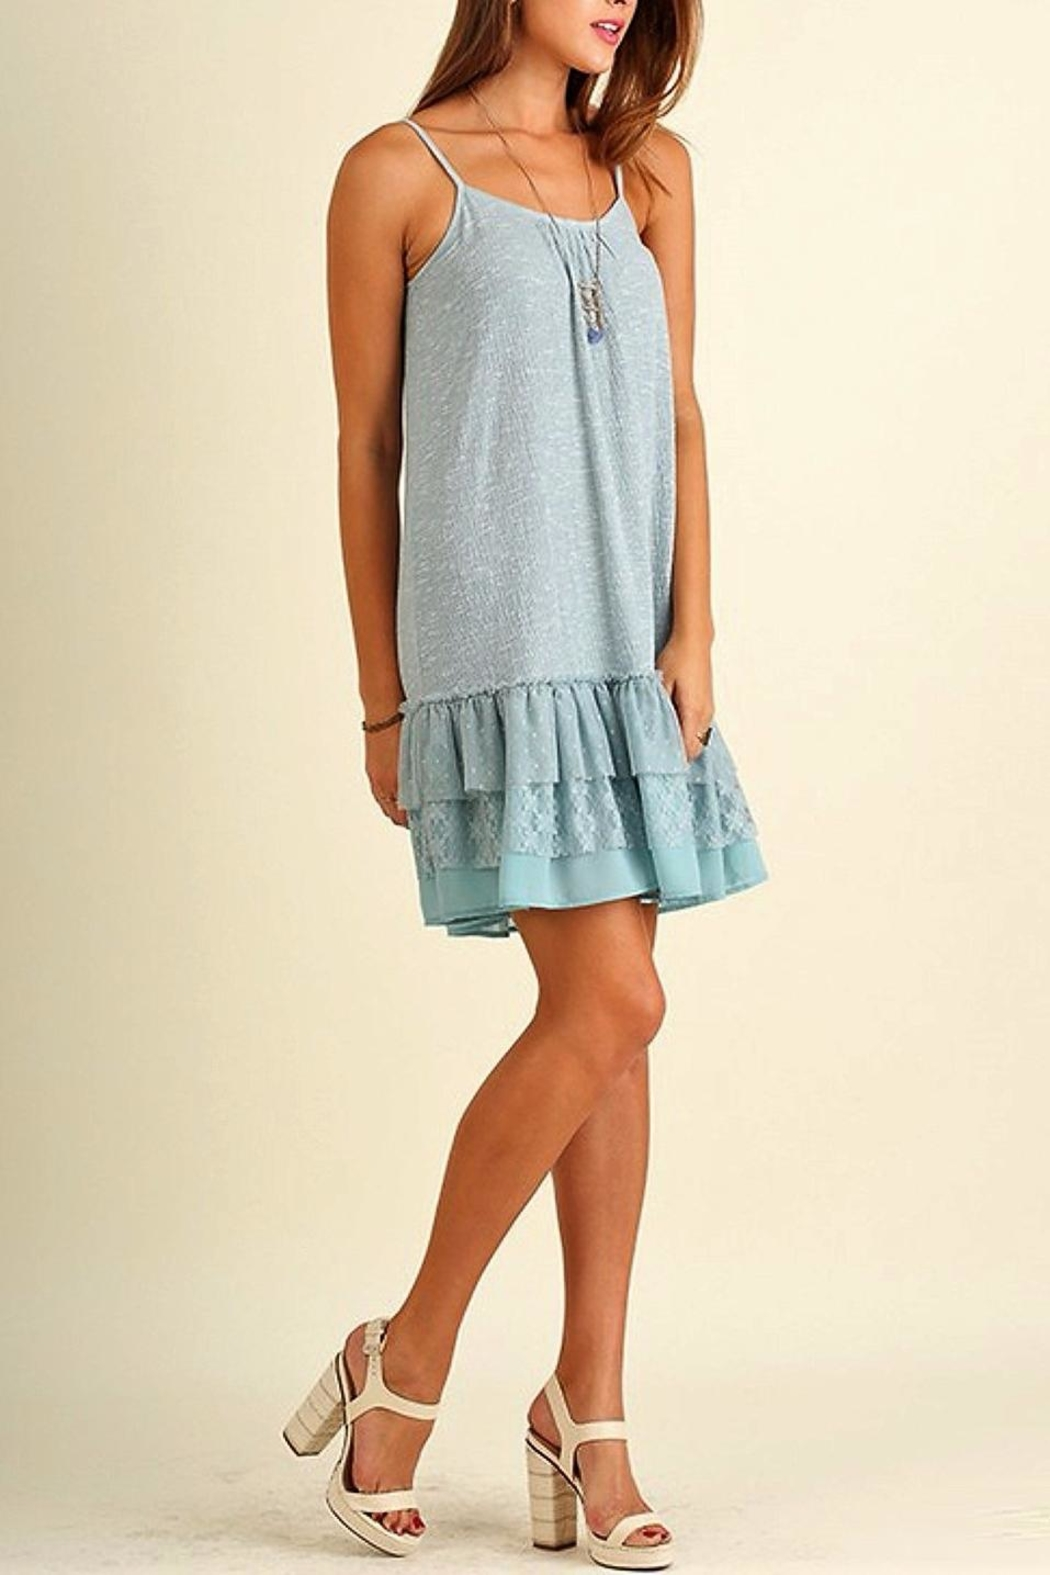 People Outfitter Sun Up Dress - Side Cropped Image